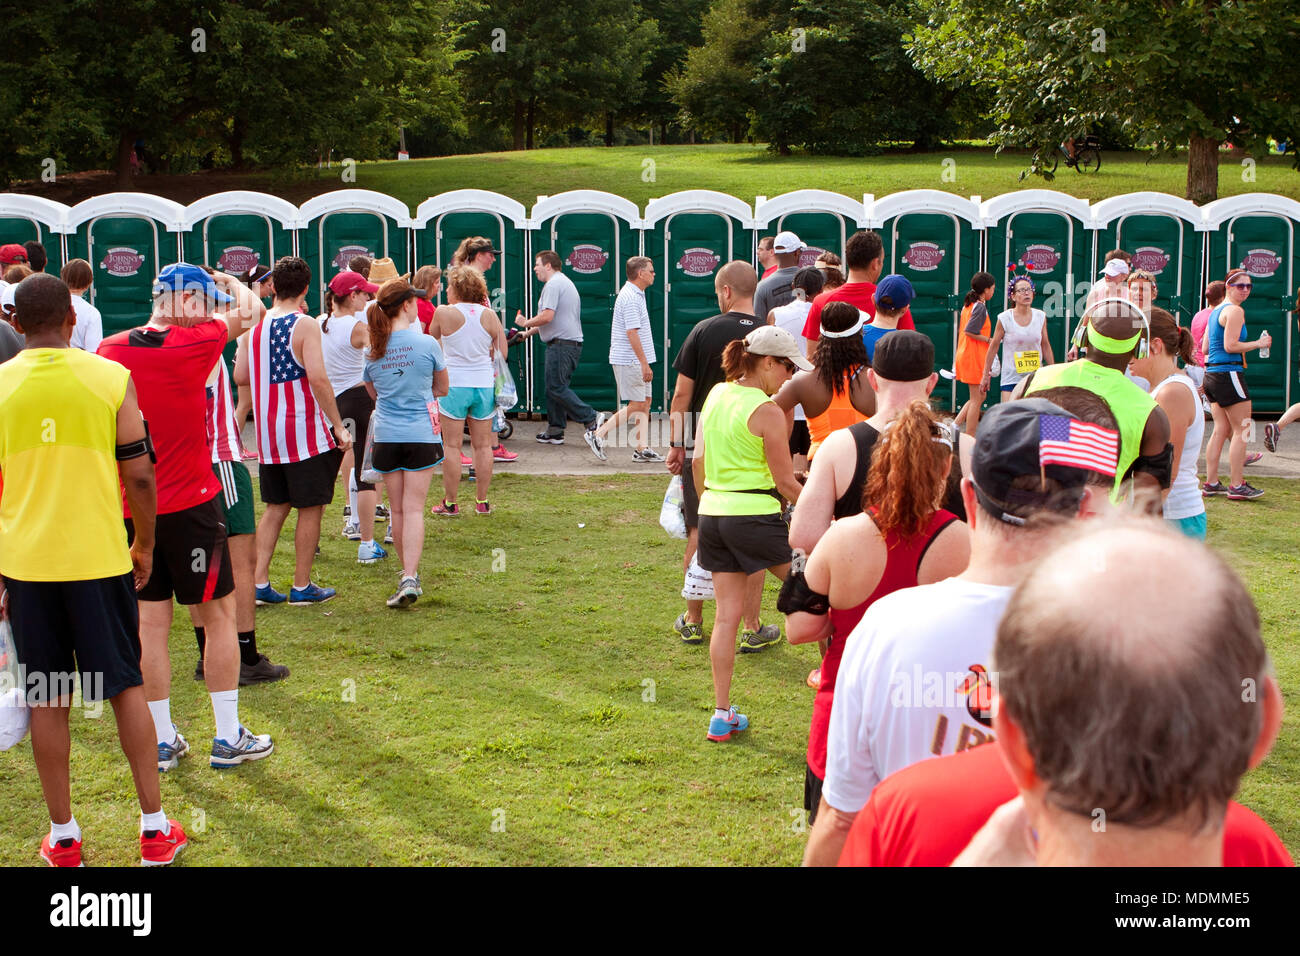 Exhausted runners wait in long lines to use a Johnny On The Spot portable toilet, at the Peachtree Road Race on July 4, 2014 in Atlanta, GA. - Stock Image